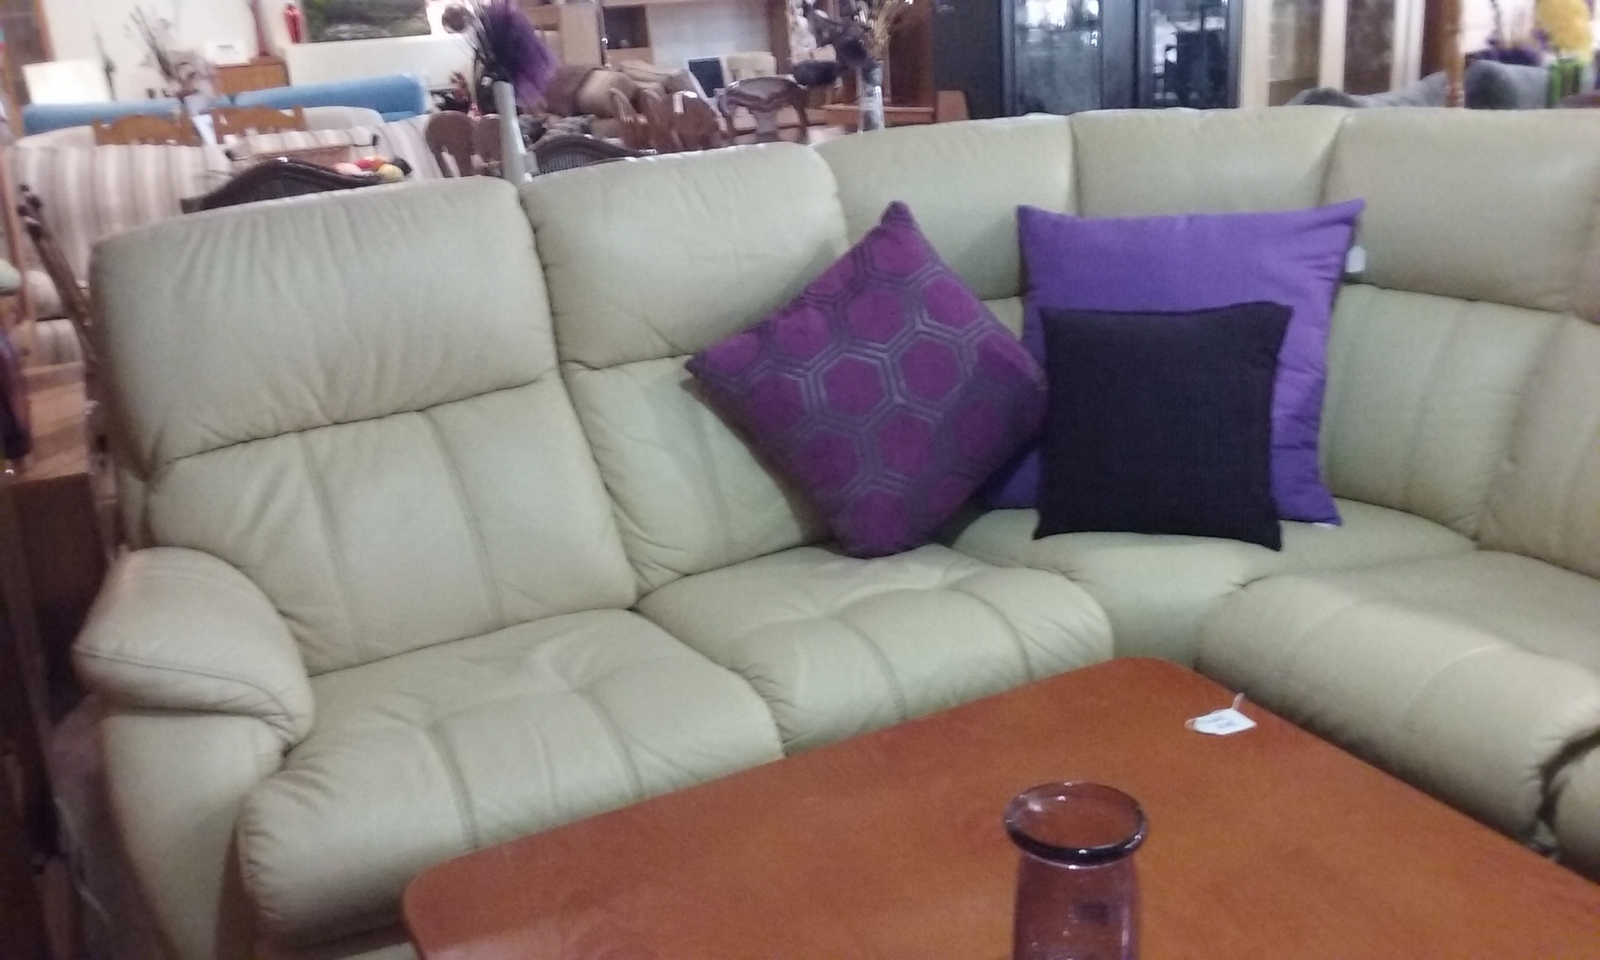 New2you furniture second hand sofas sofa beds for the living room ref h12 torrevieja spain Second hand sofa